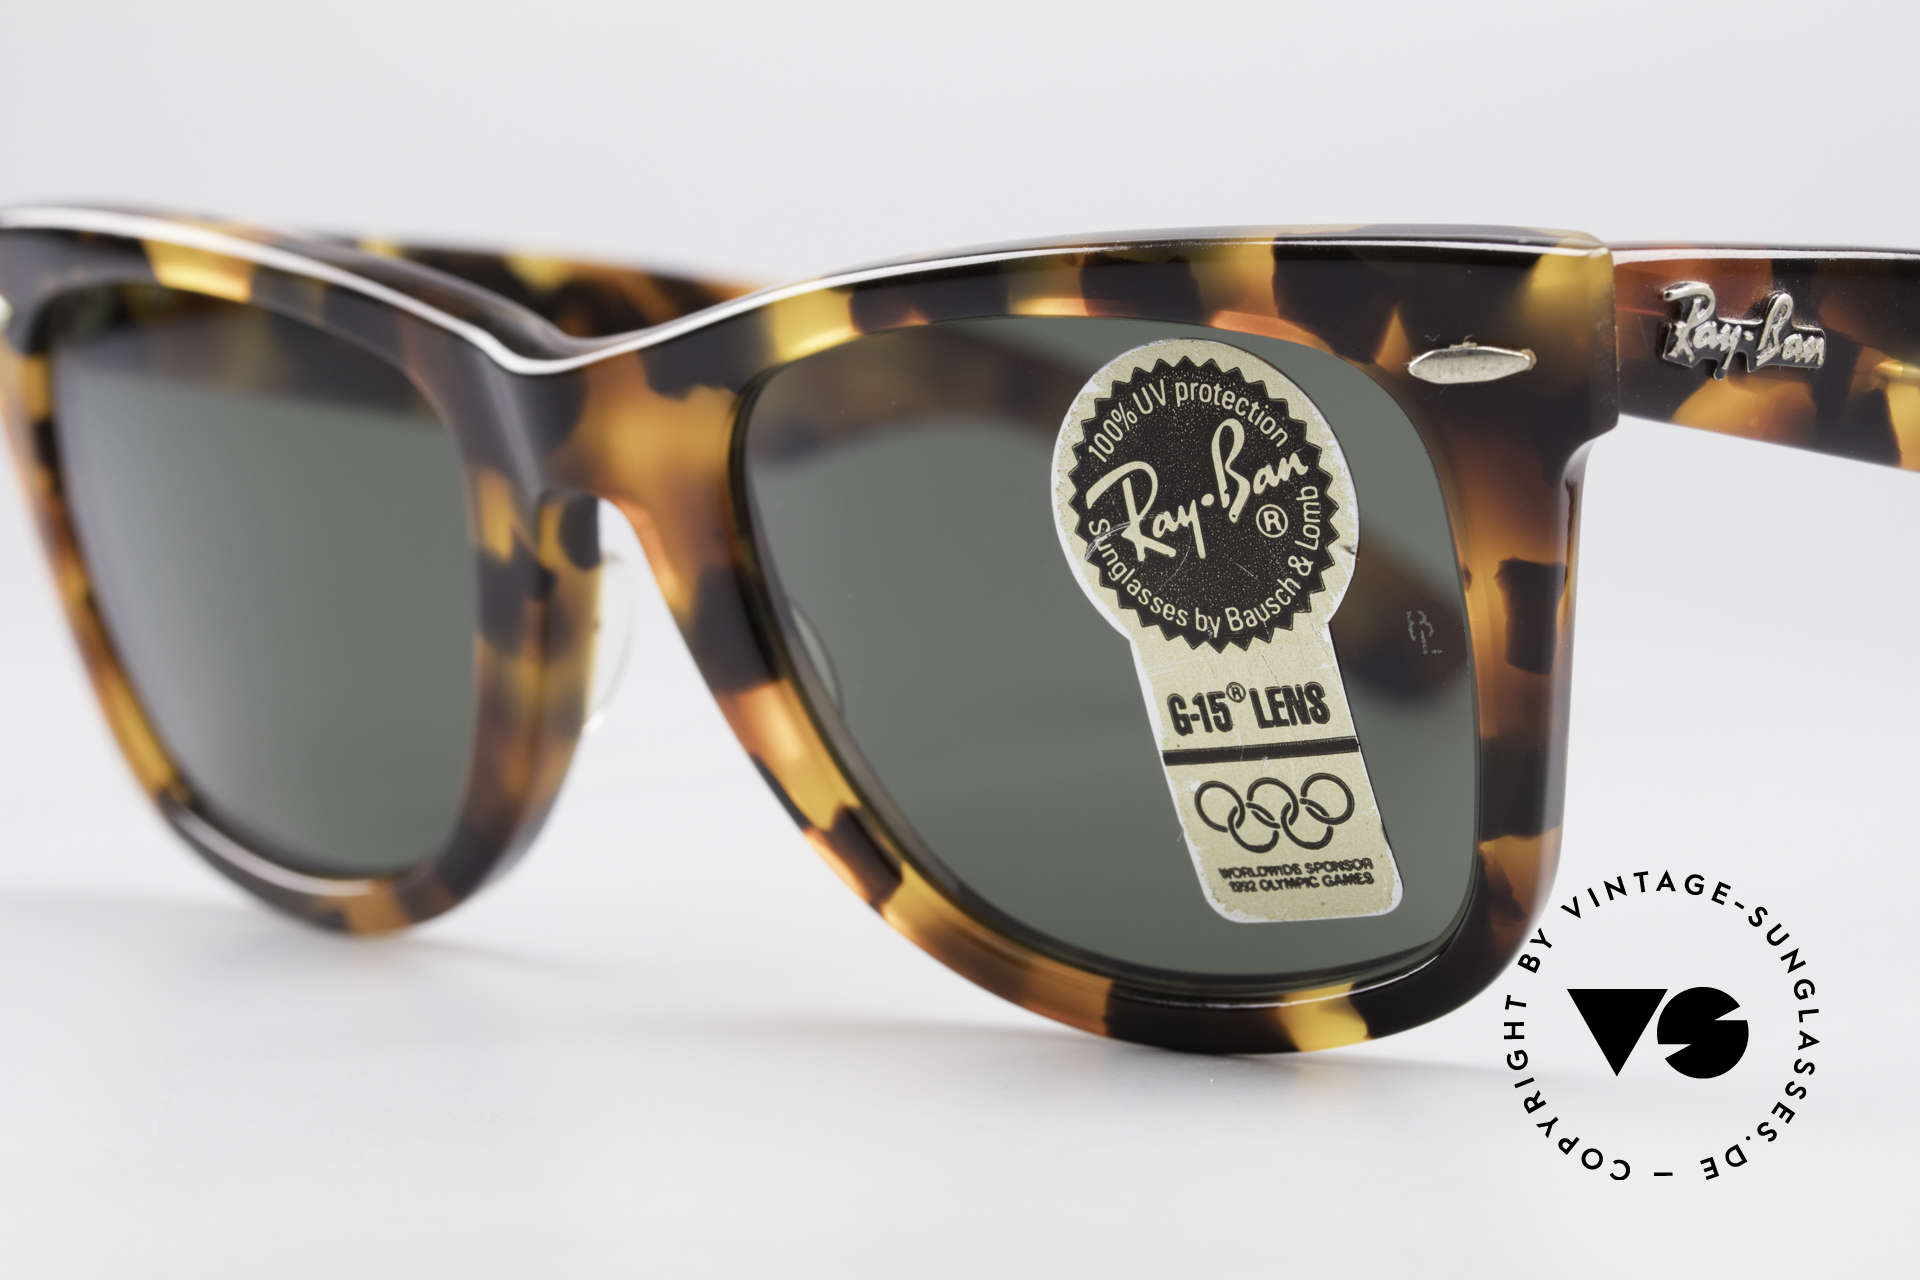 Ray Ban Wayfarer I Limited Edition USA Original, limited edition: spotted tortoise, W1441 + packing, Made for Men and Women